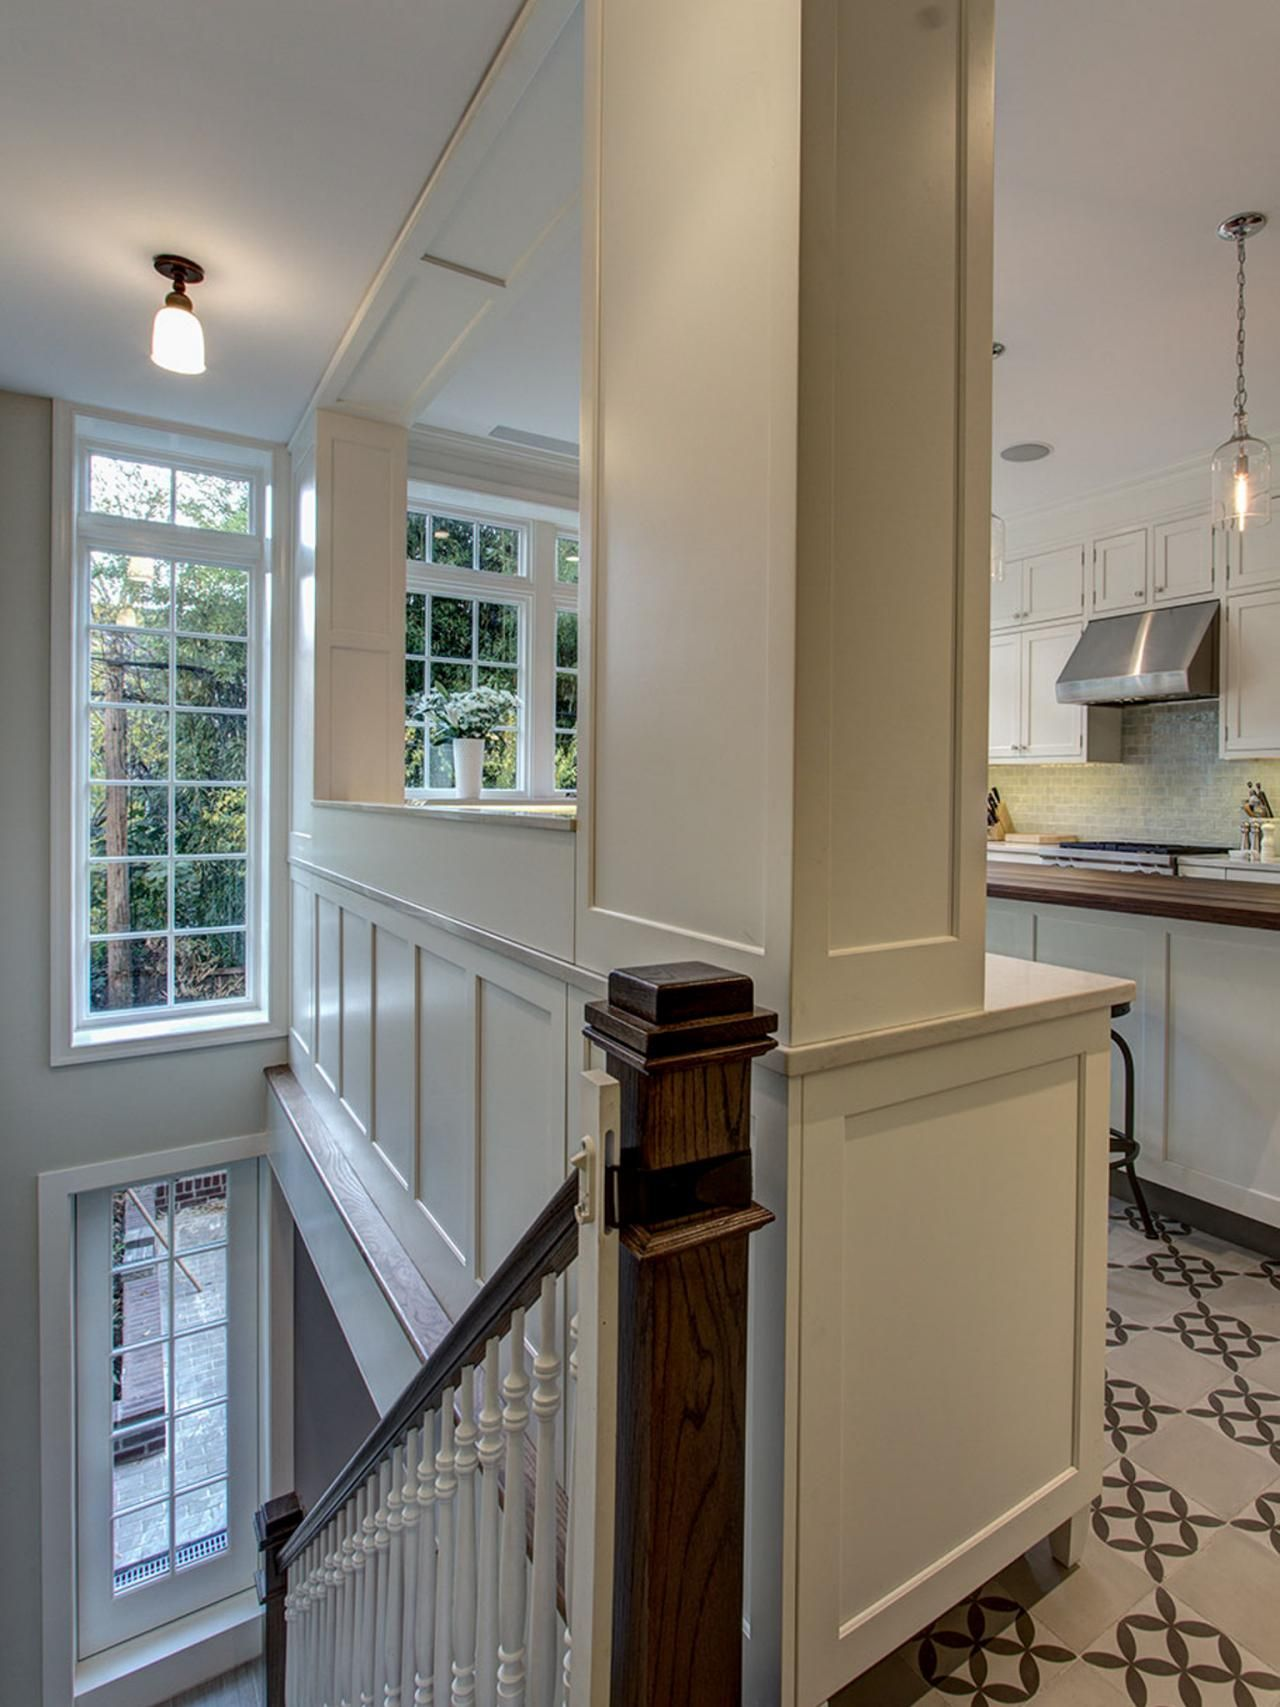 Opening A Galley Kitchen Up The Stairway To A Lowerlevel Family Room Backs Up To The